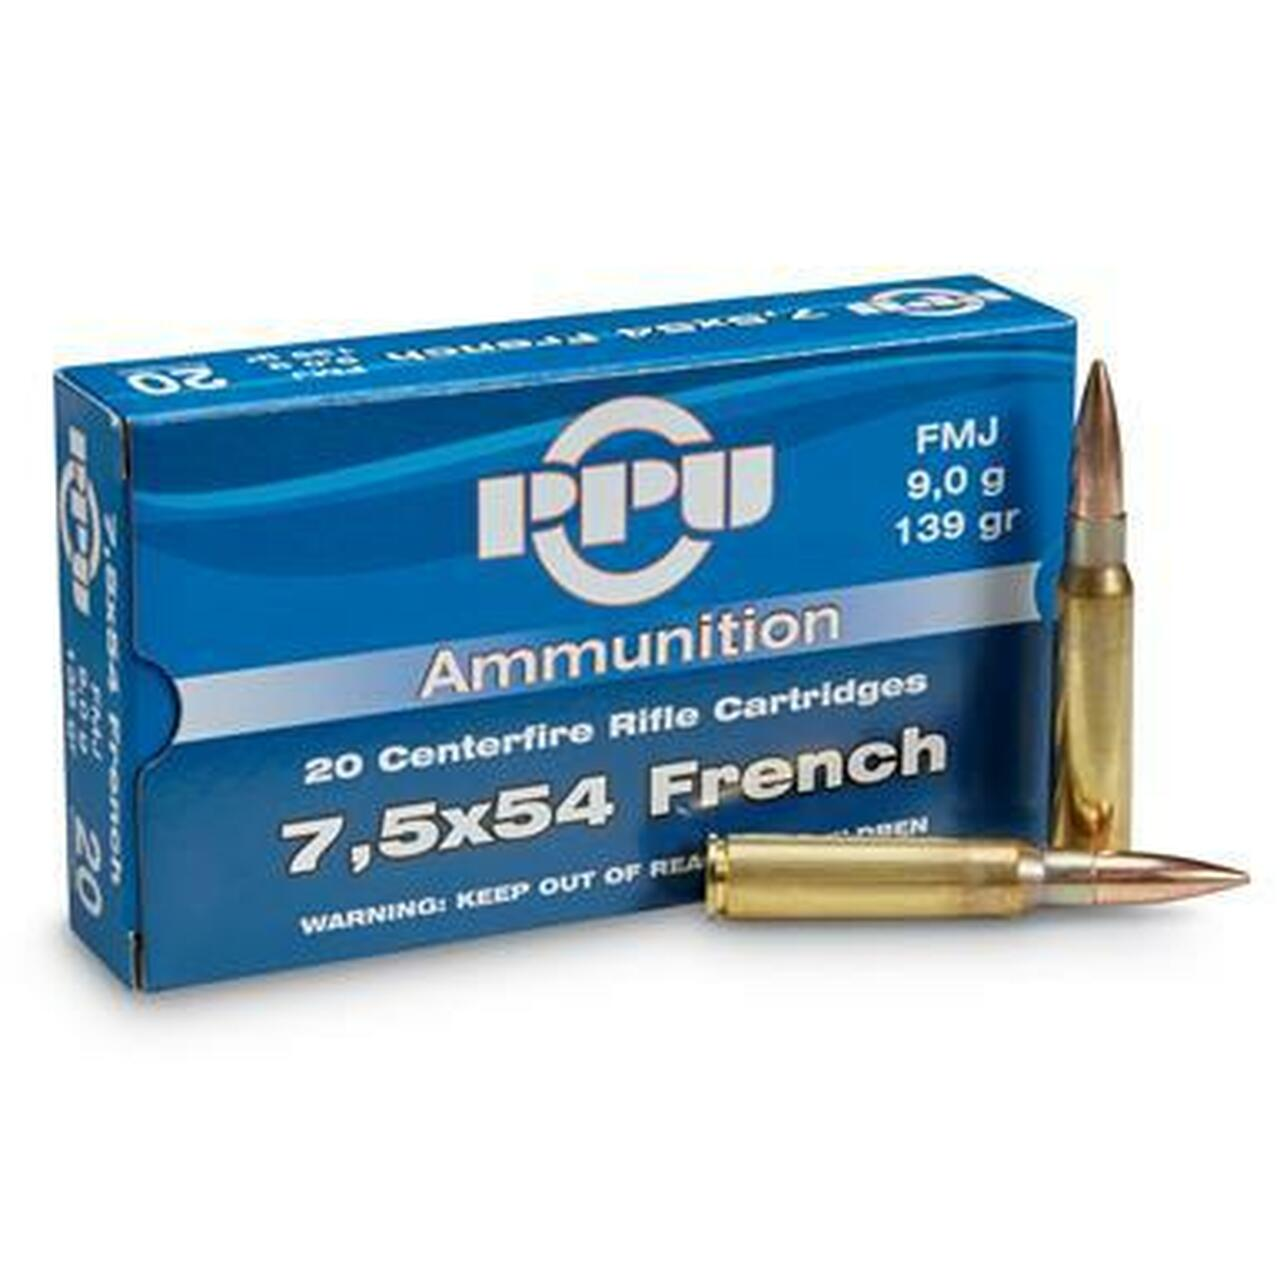 7.5x54mm French Ammo